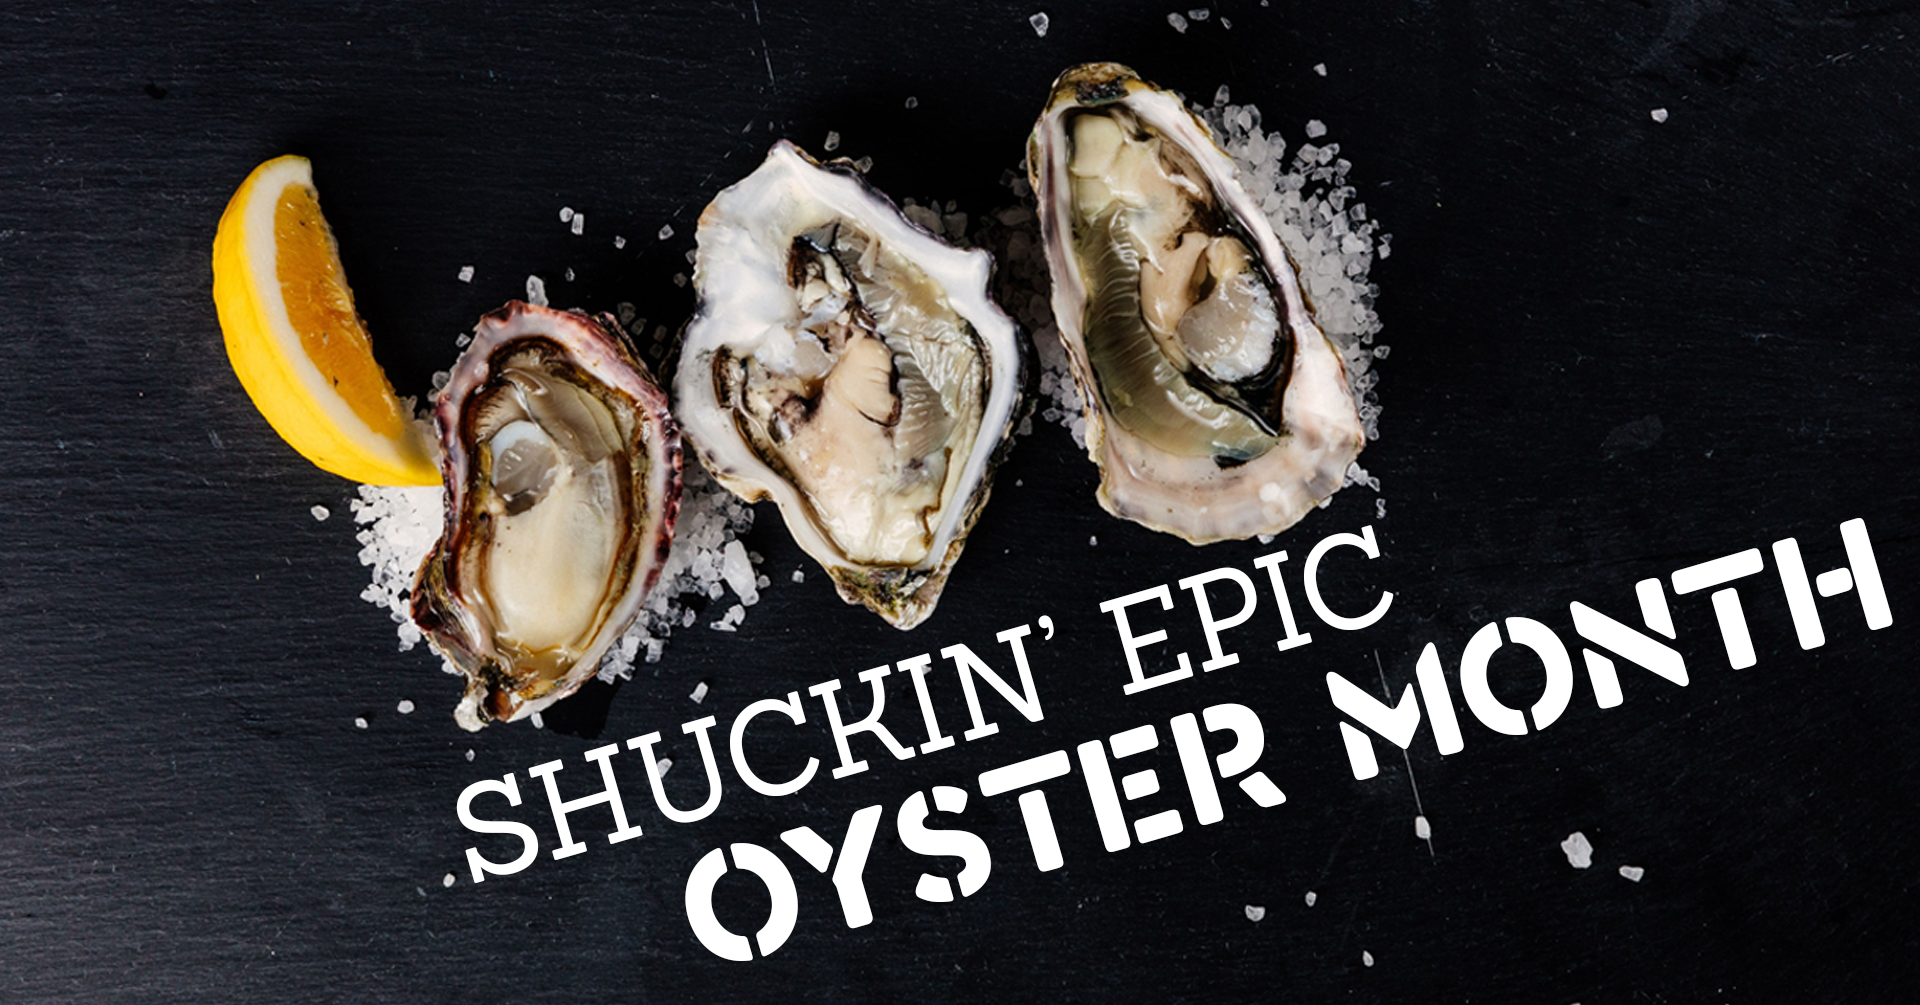 Oyster month creative